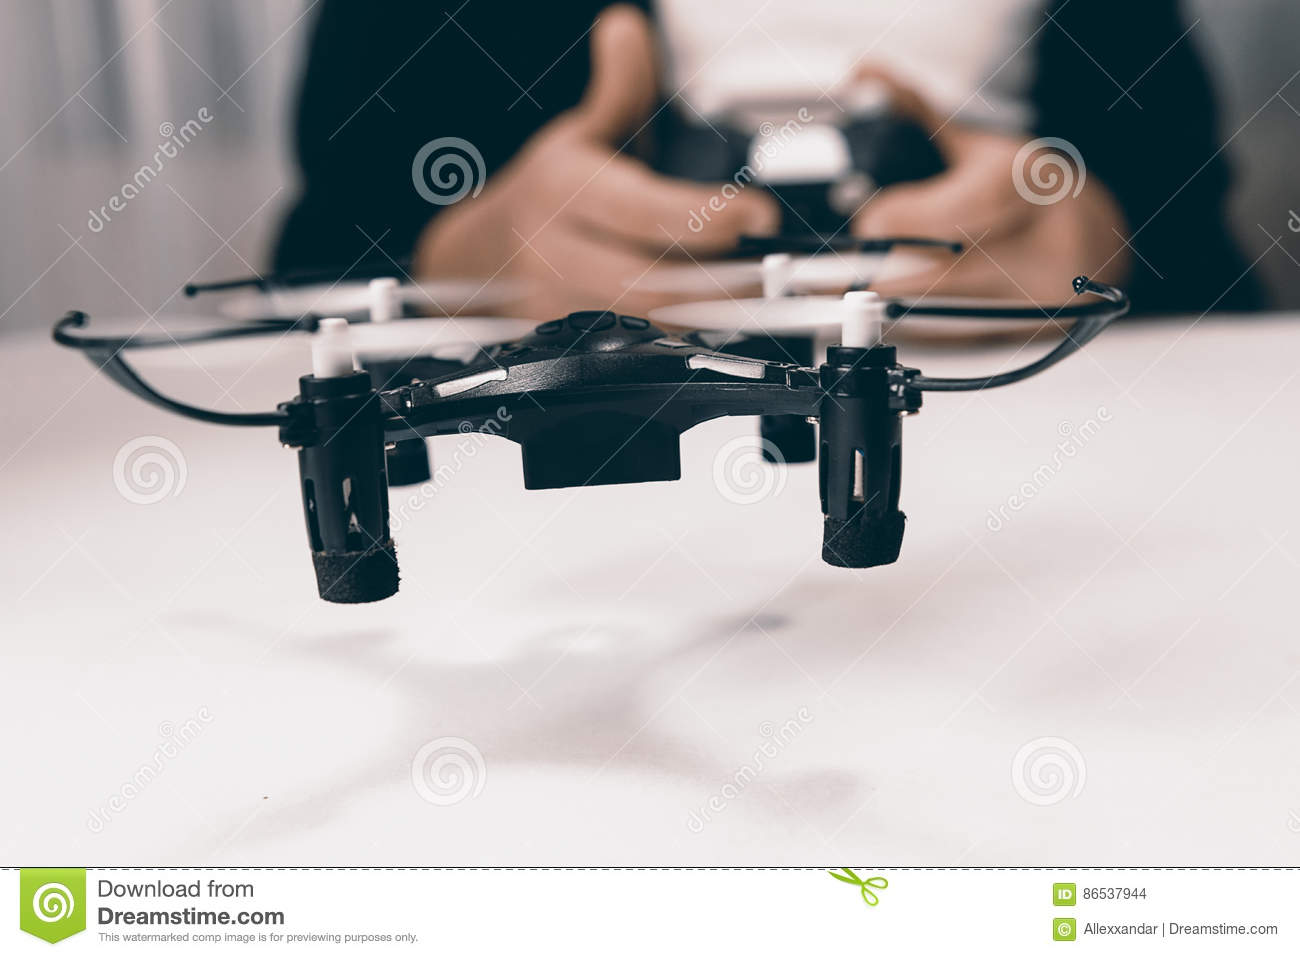 Boy Hands With A Remote Control Flying Small Drone Toy Indoors